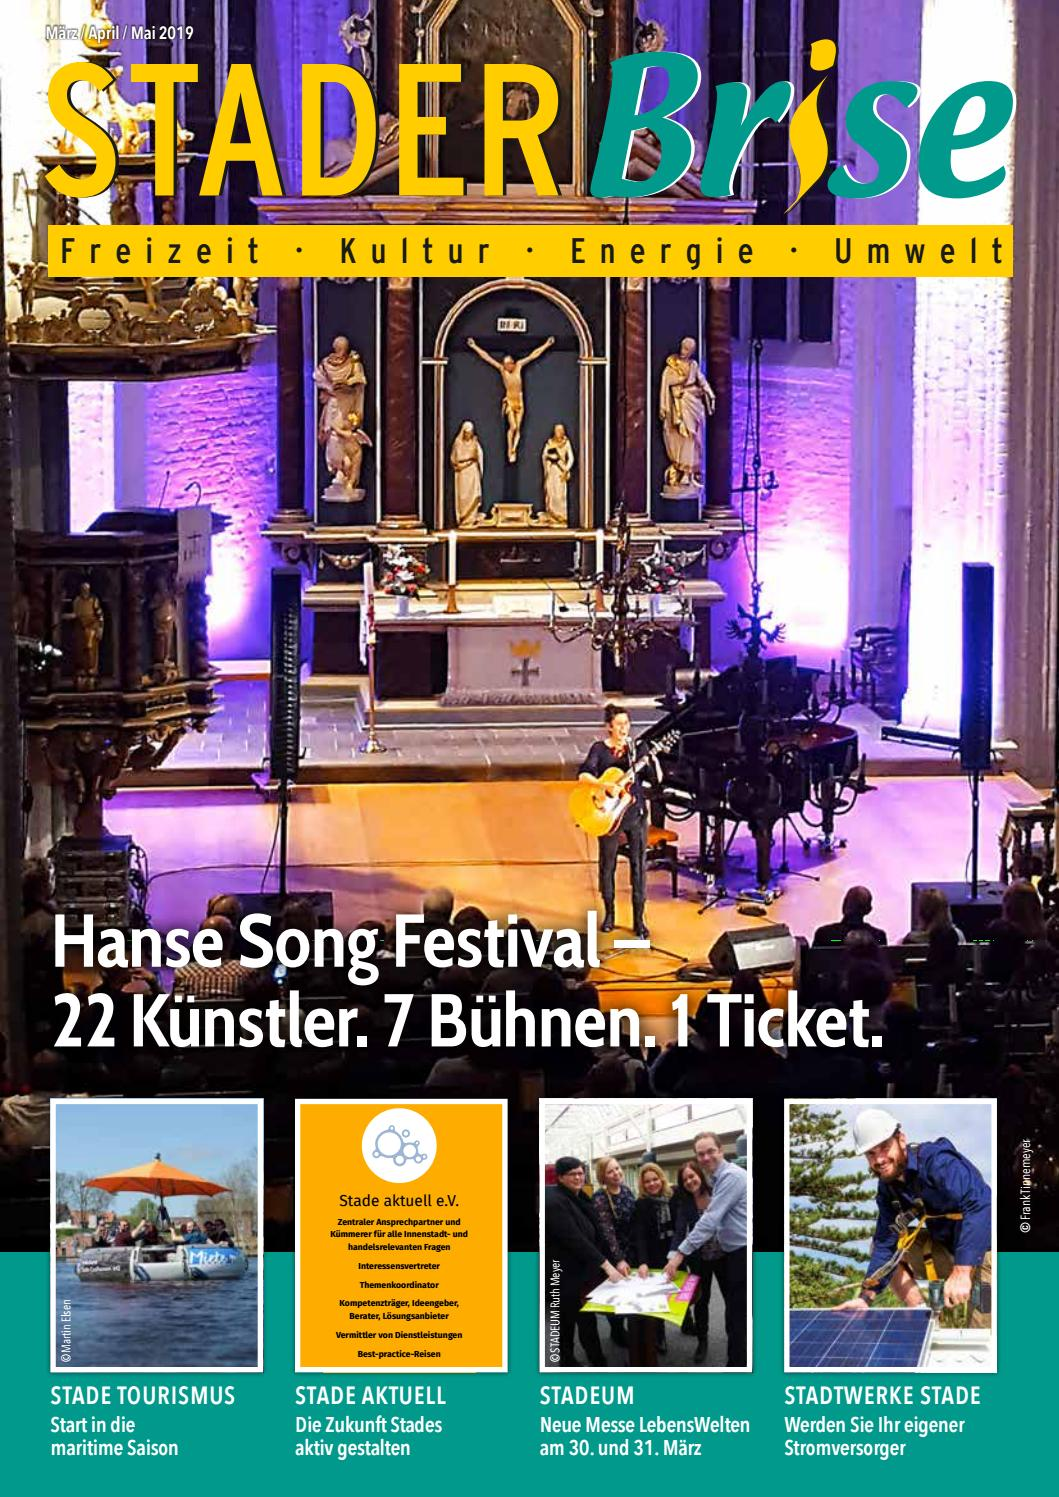 Stader Brise März April Mai 2019 By Stadtwerke Stade Gmbh Issuu